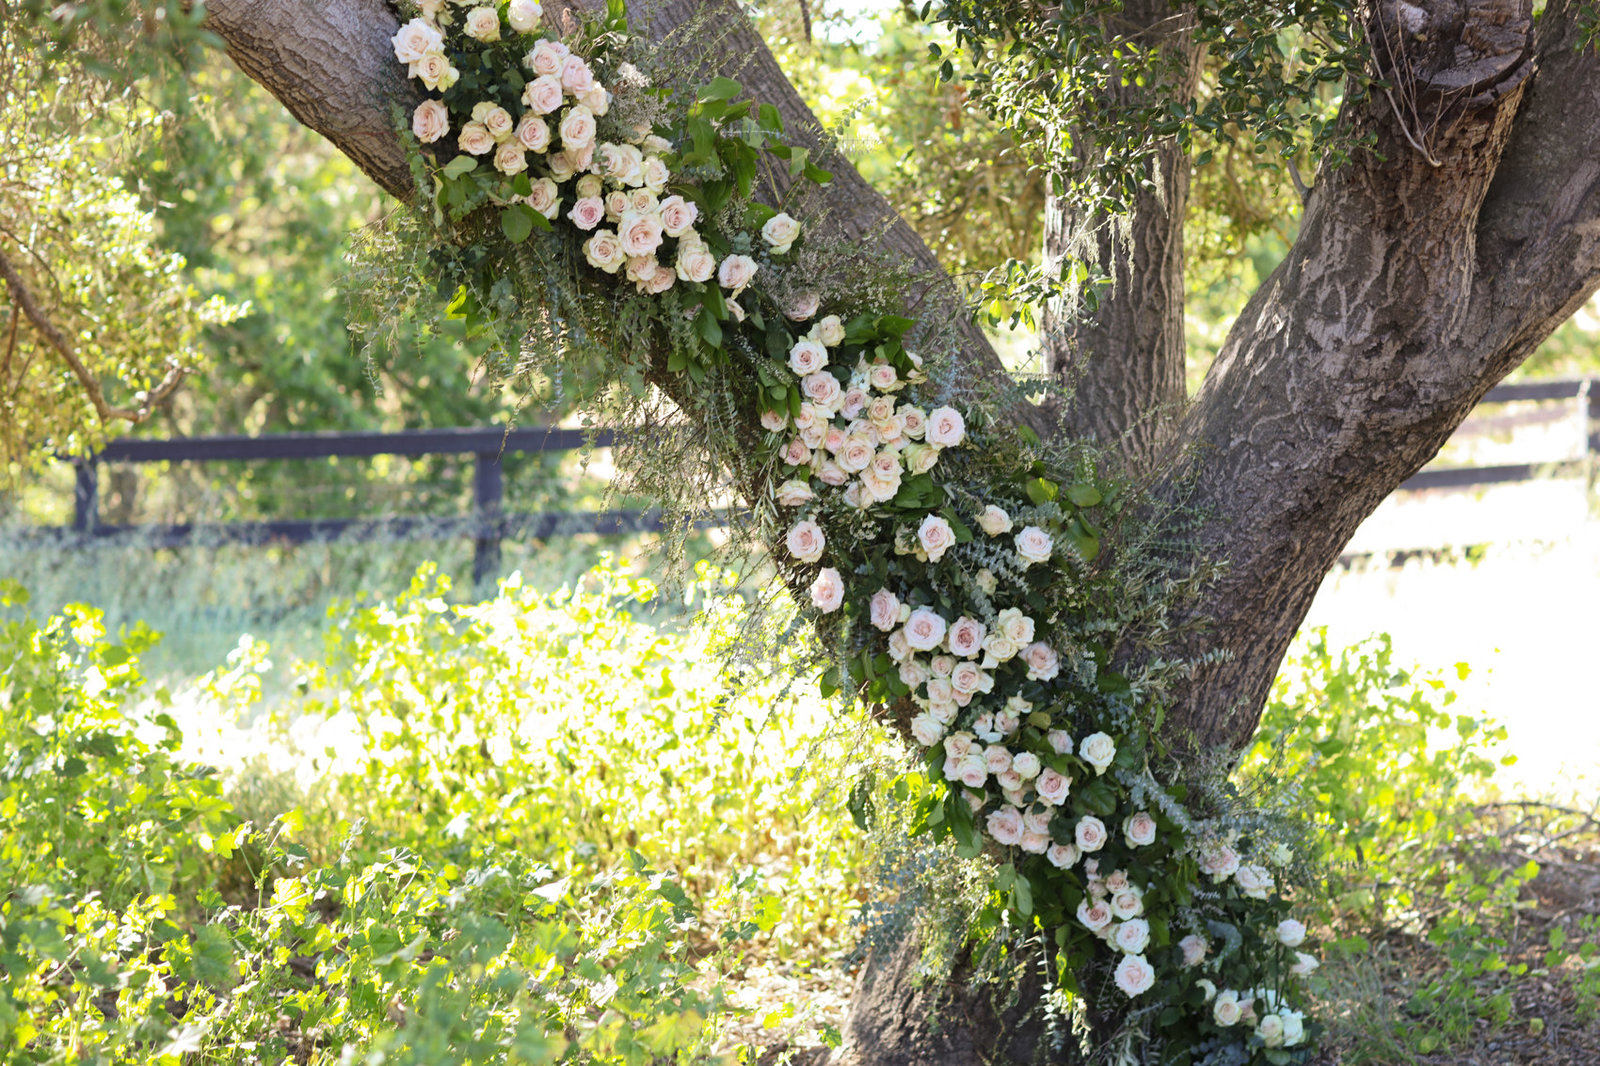 Northern california wedding has stunning floral decorations at venue